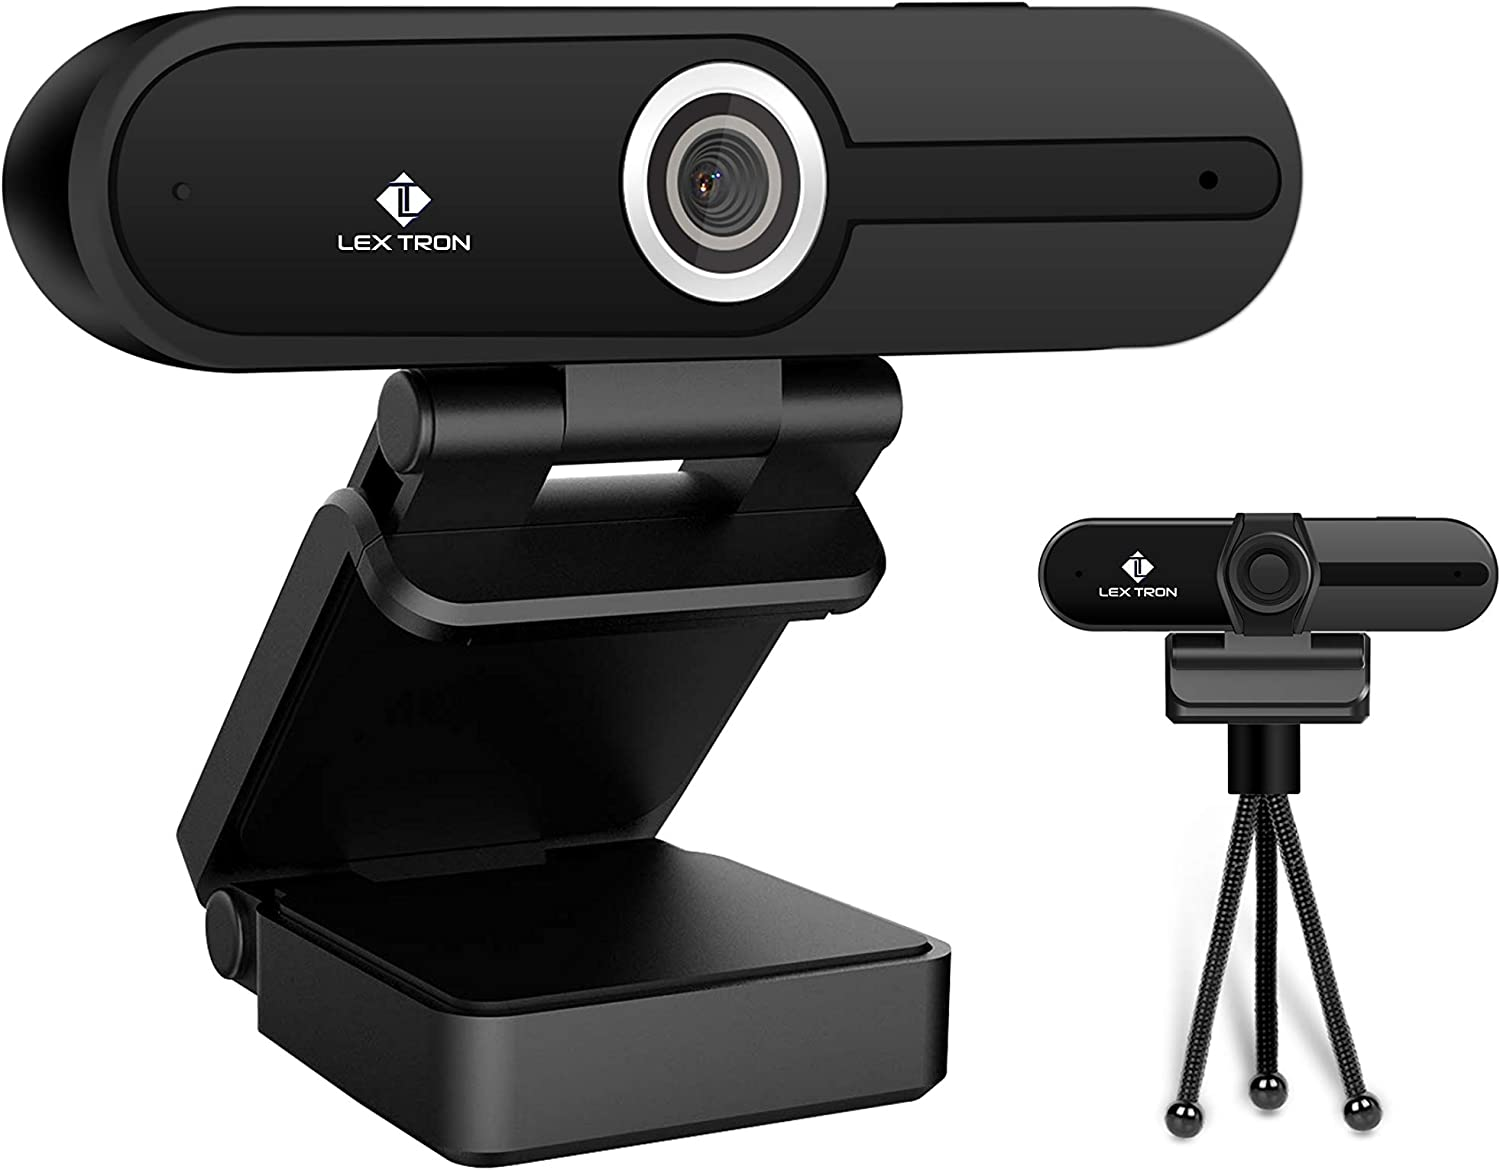 4K Webcam HD Computer Camera | 8MP 1080p Web Camera | Laptop and Desktop HD Webcam | Tripod & Privacy Cover | Mac and PC | Webcam with Microphone | Video Conference Calls & Recording | Web Cam New